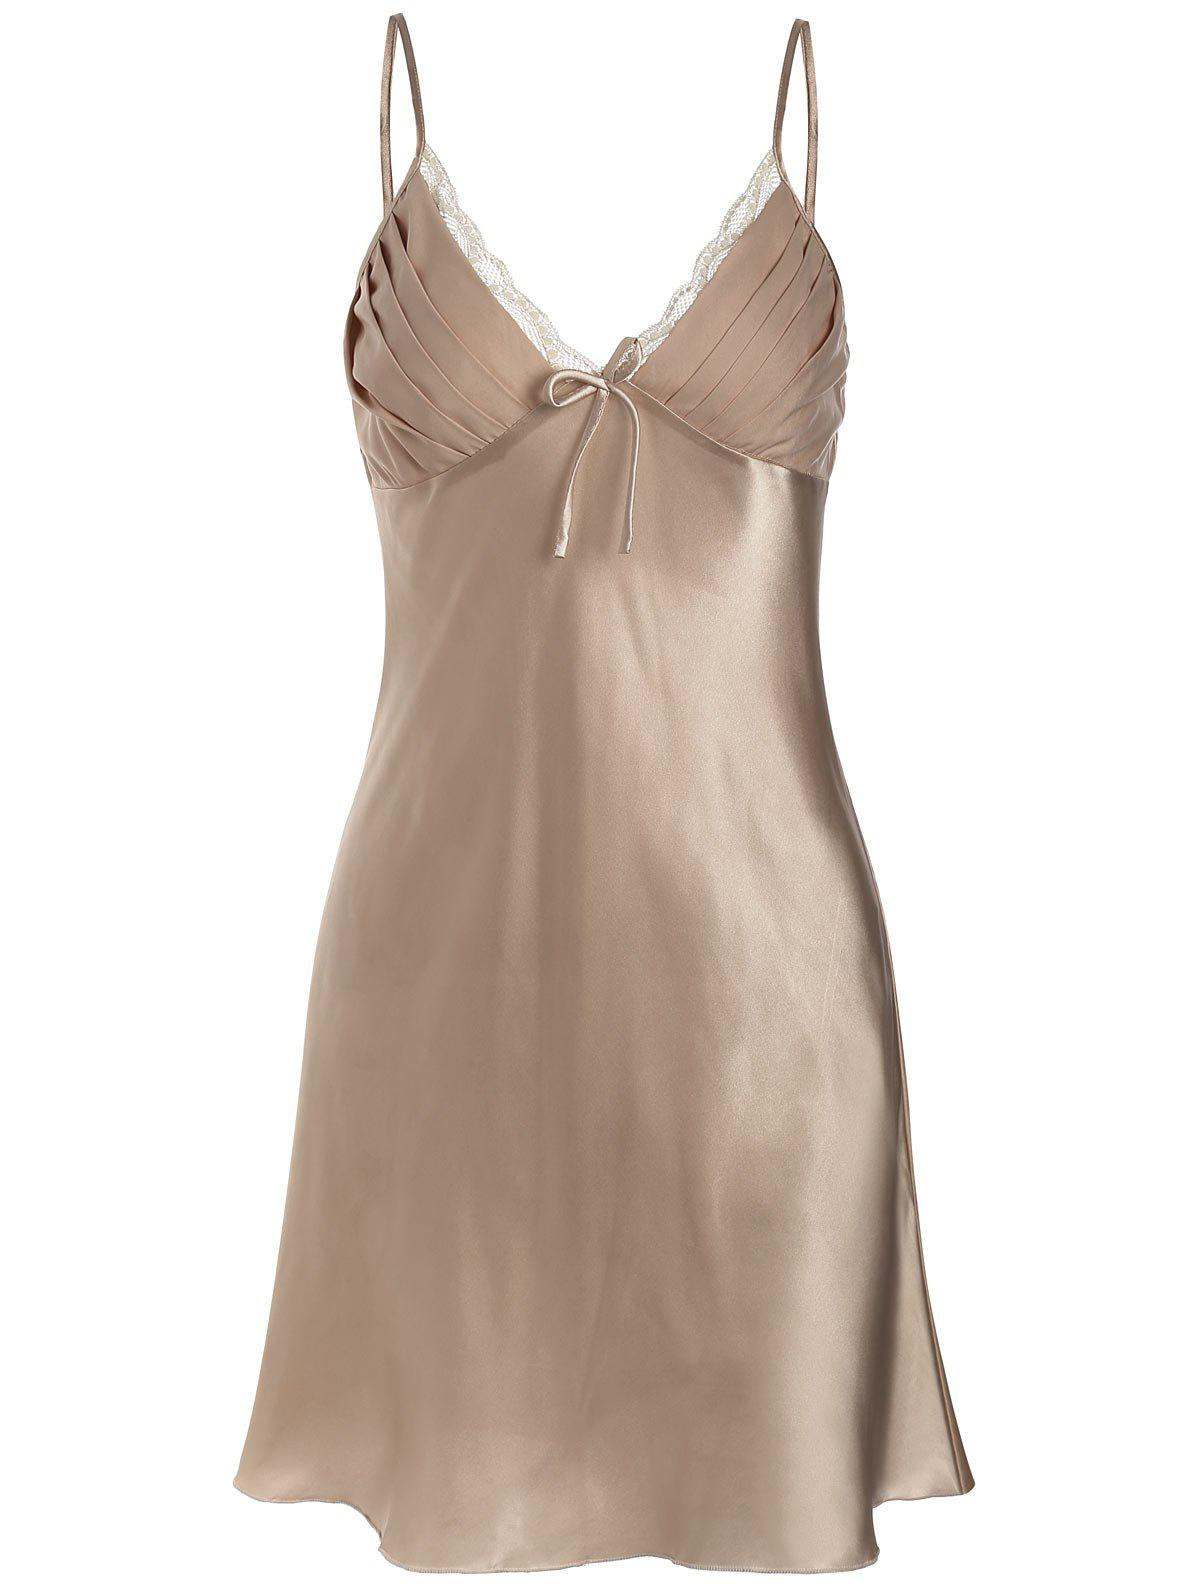 Online Satin Lace Slip Sleepwear Dress